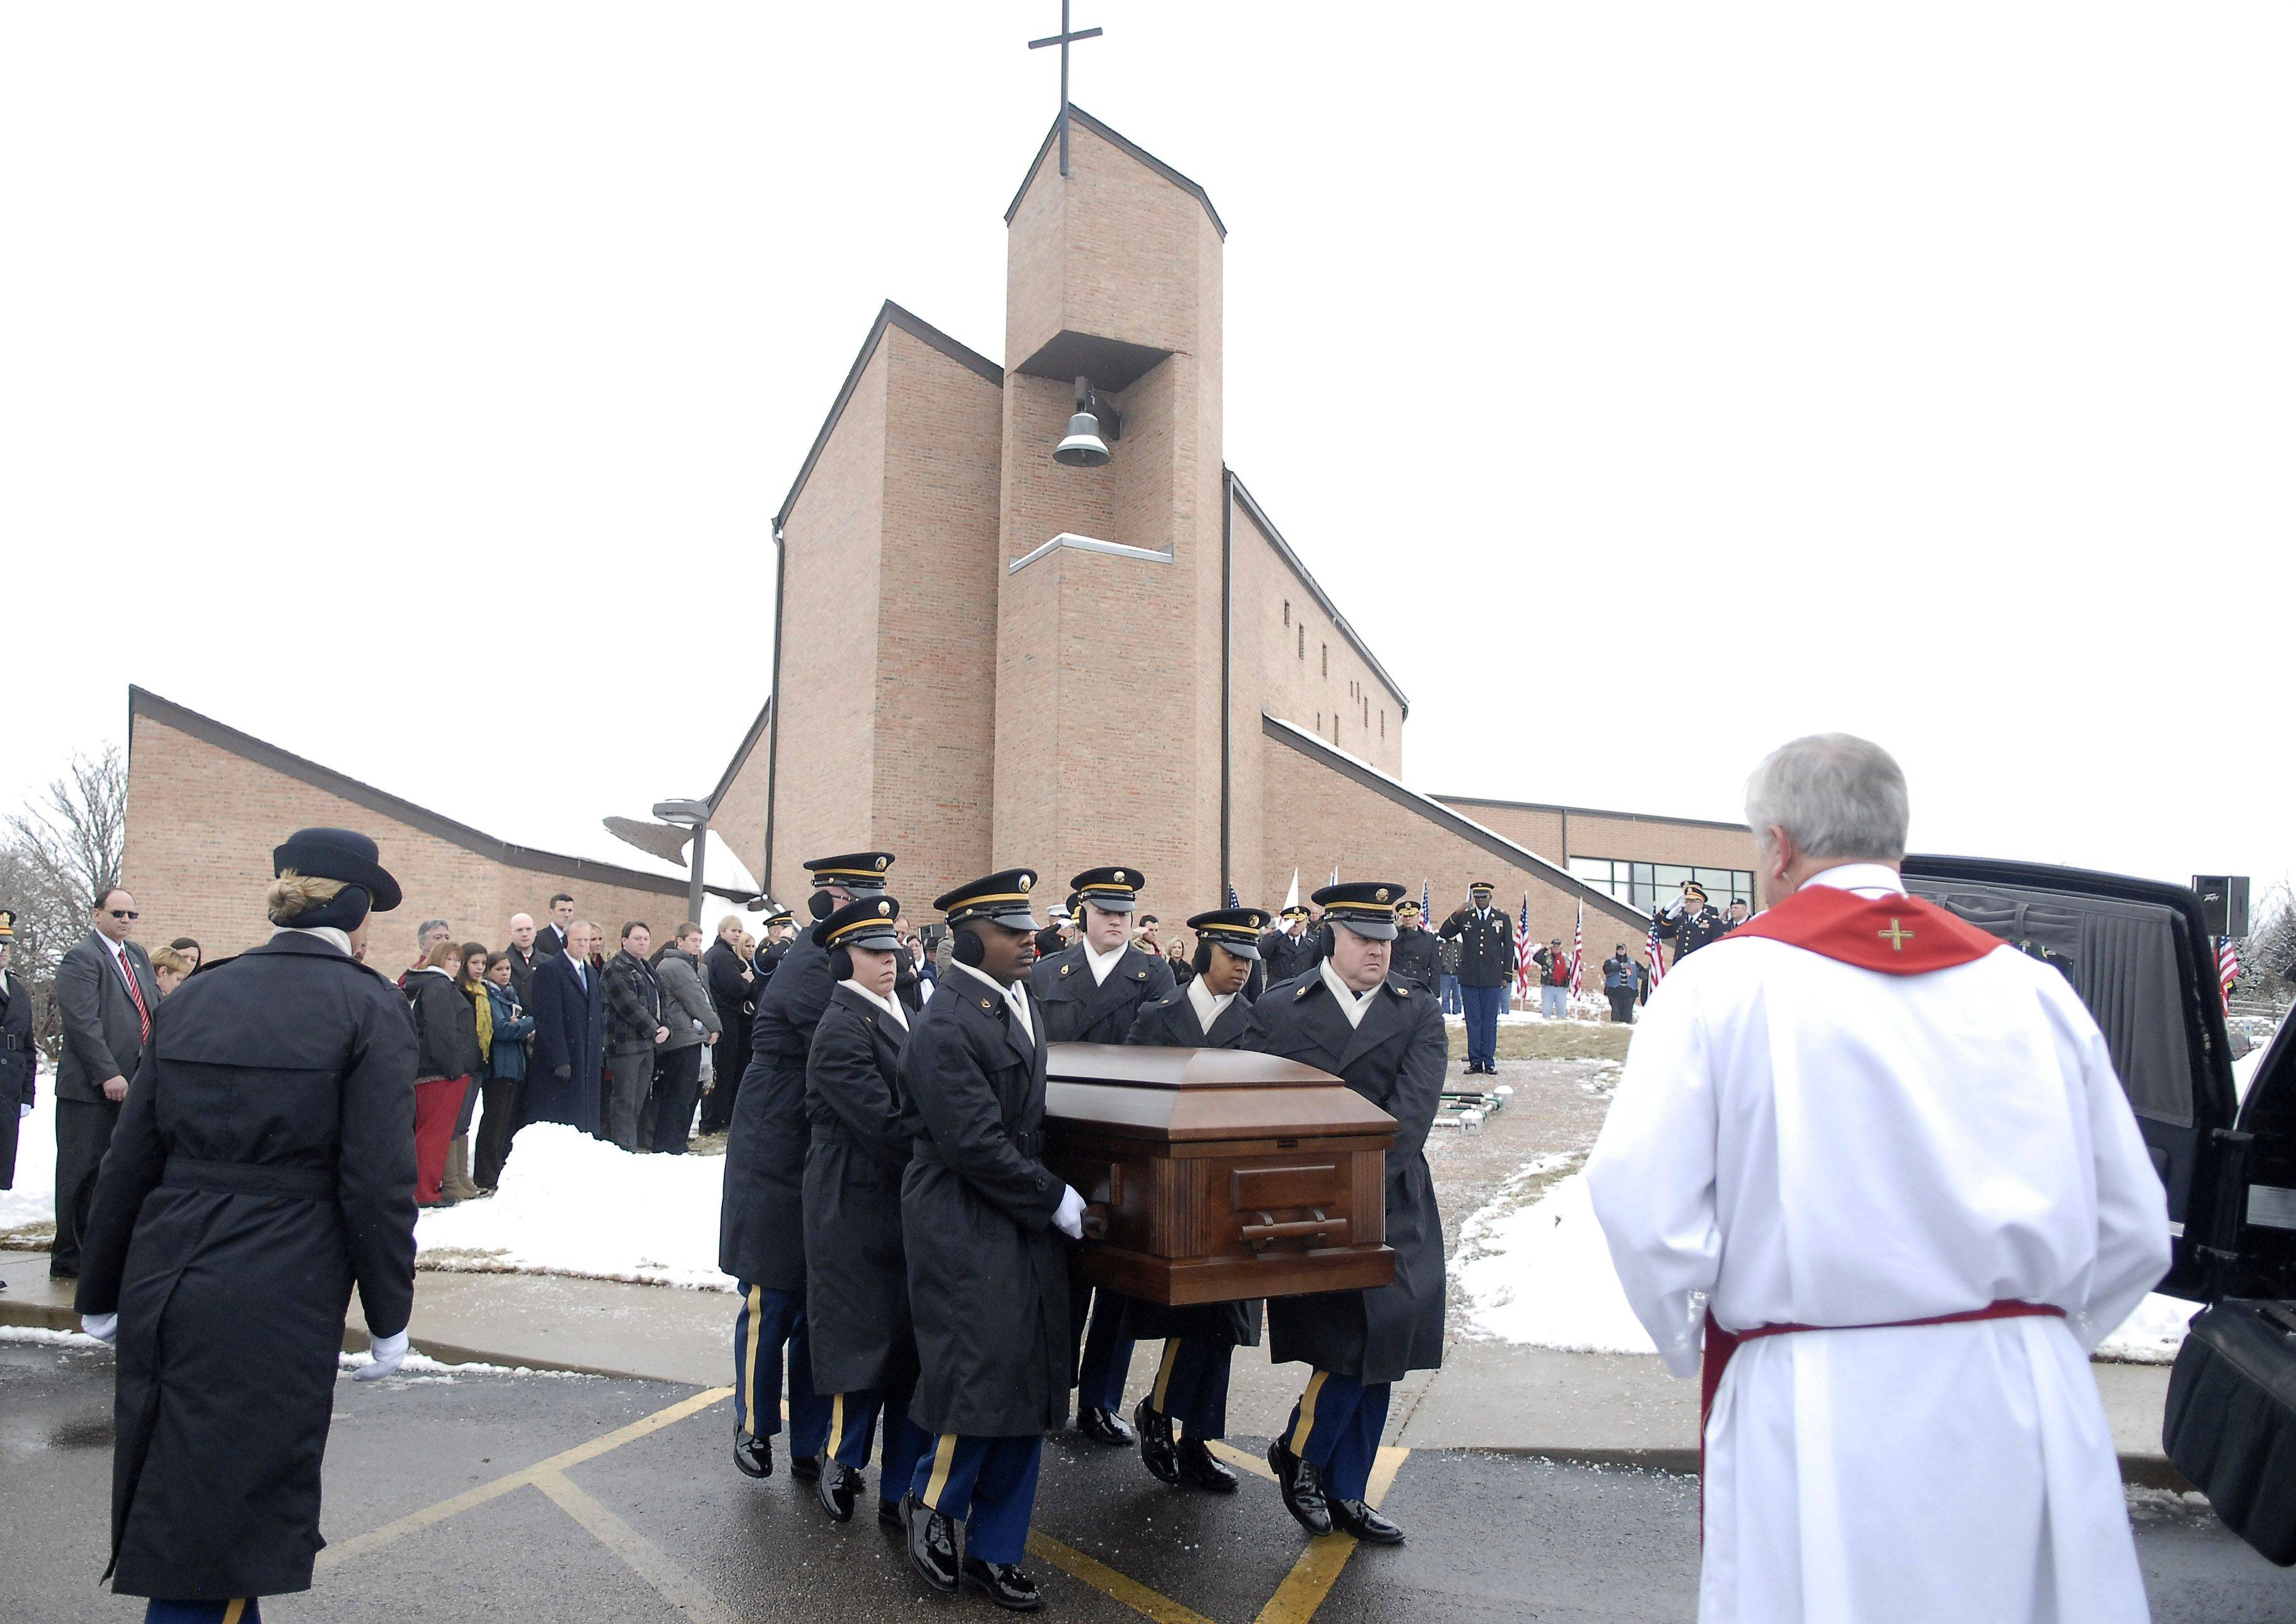 Staff sergeants Arma Wright, left, and Jeffrey Hawley lead the Indiana National Honor Guard Ceremonial Unit in placing the casket of Spc. Christopher Patterson into the hearse after his funeral with full military honors at Immanuel Lutheran Church in Batavia Saturday.